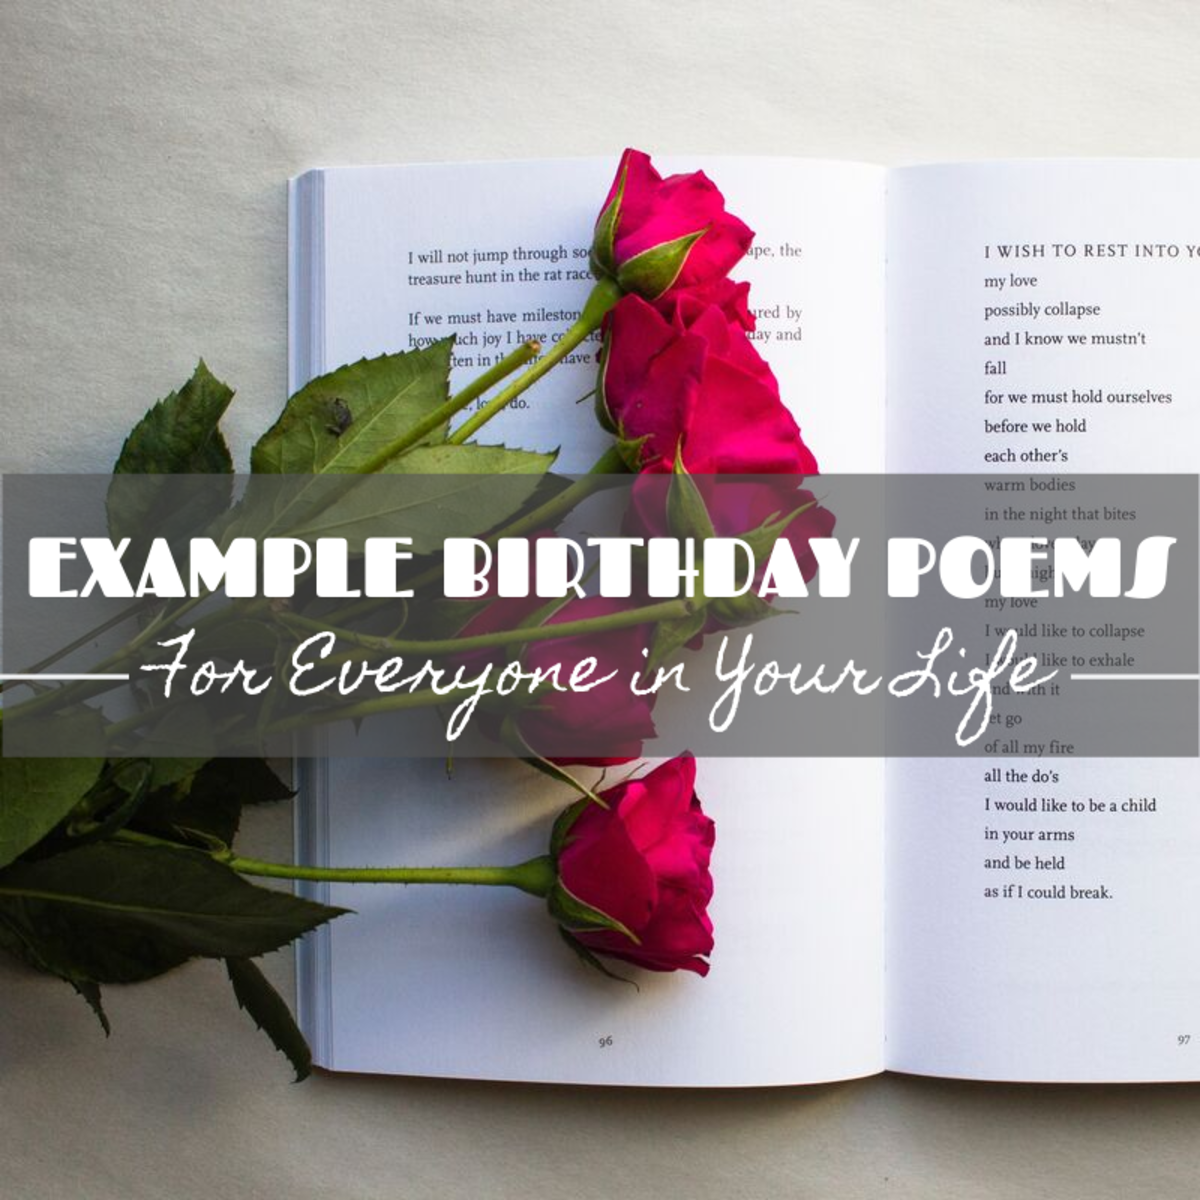 Writing a poem is a great way to celebrate someone on their birthday. Use these examples for inspiration.